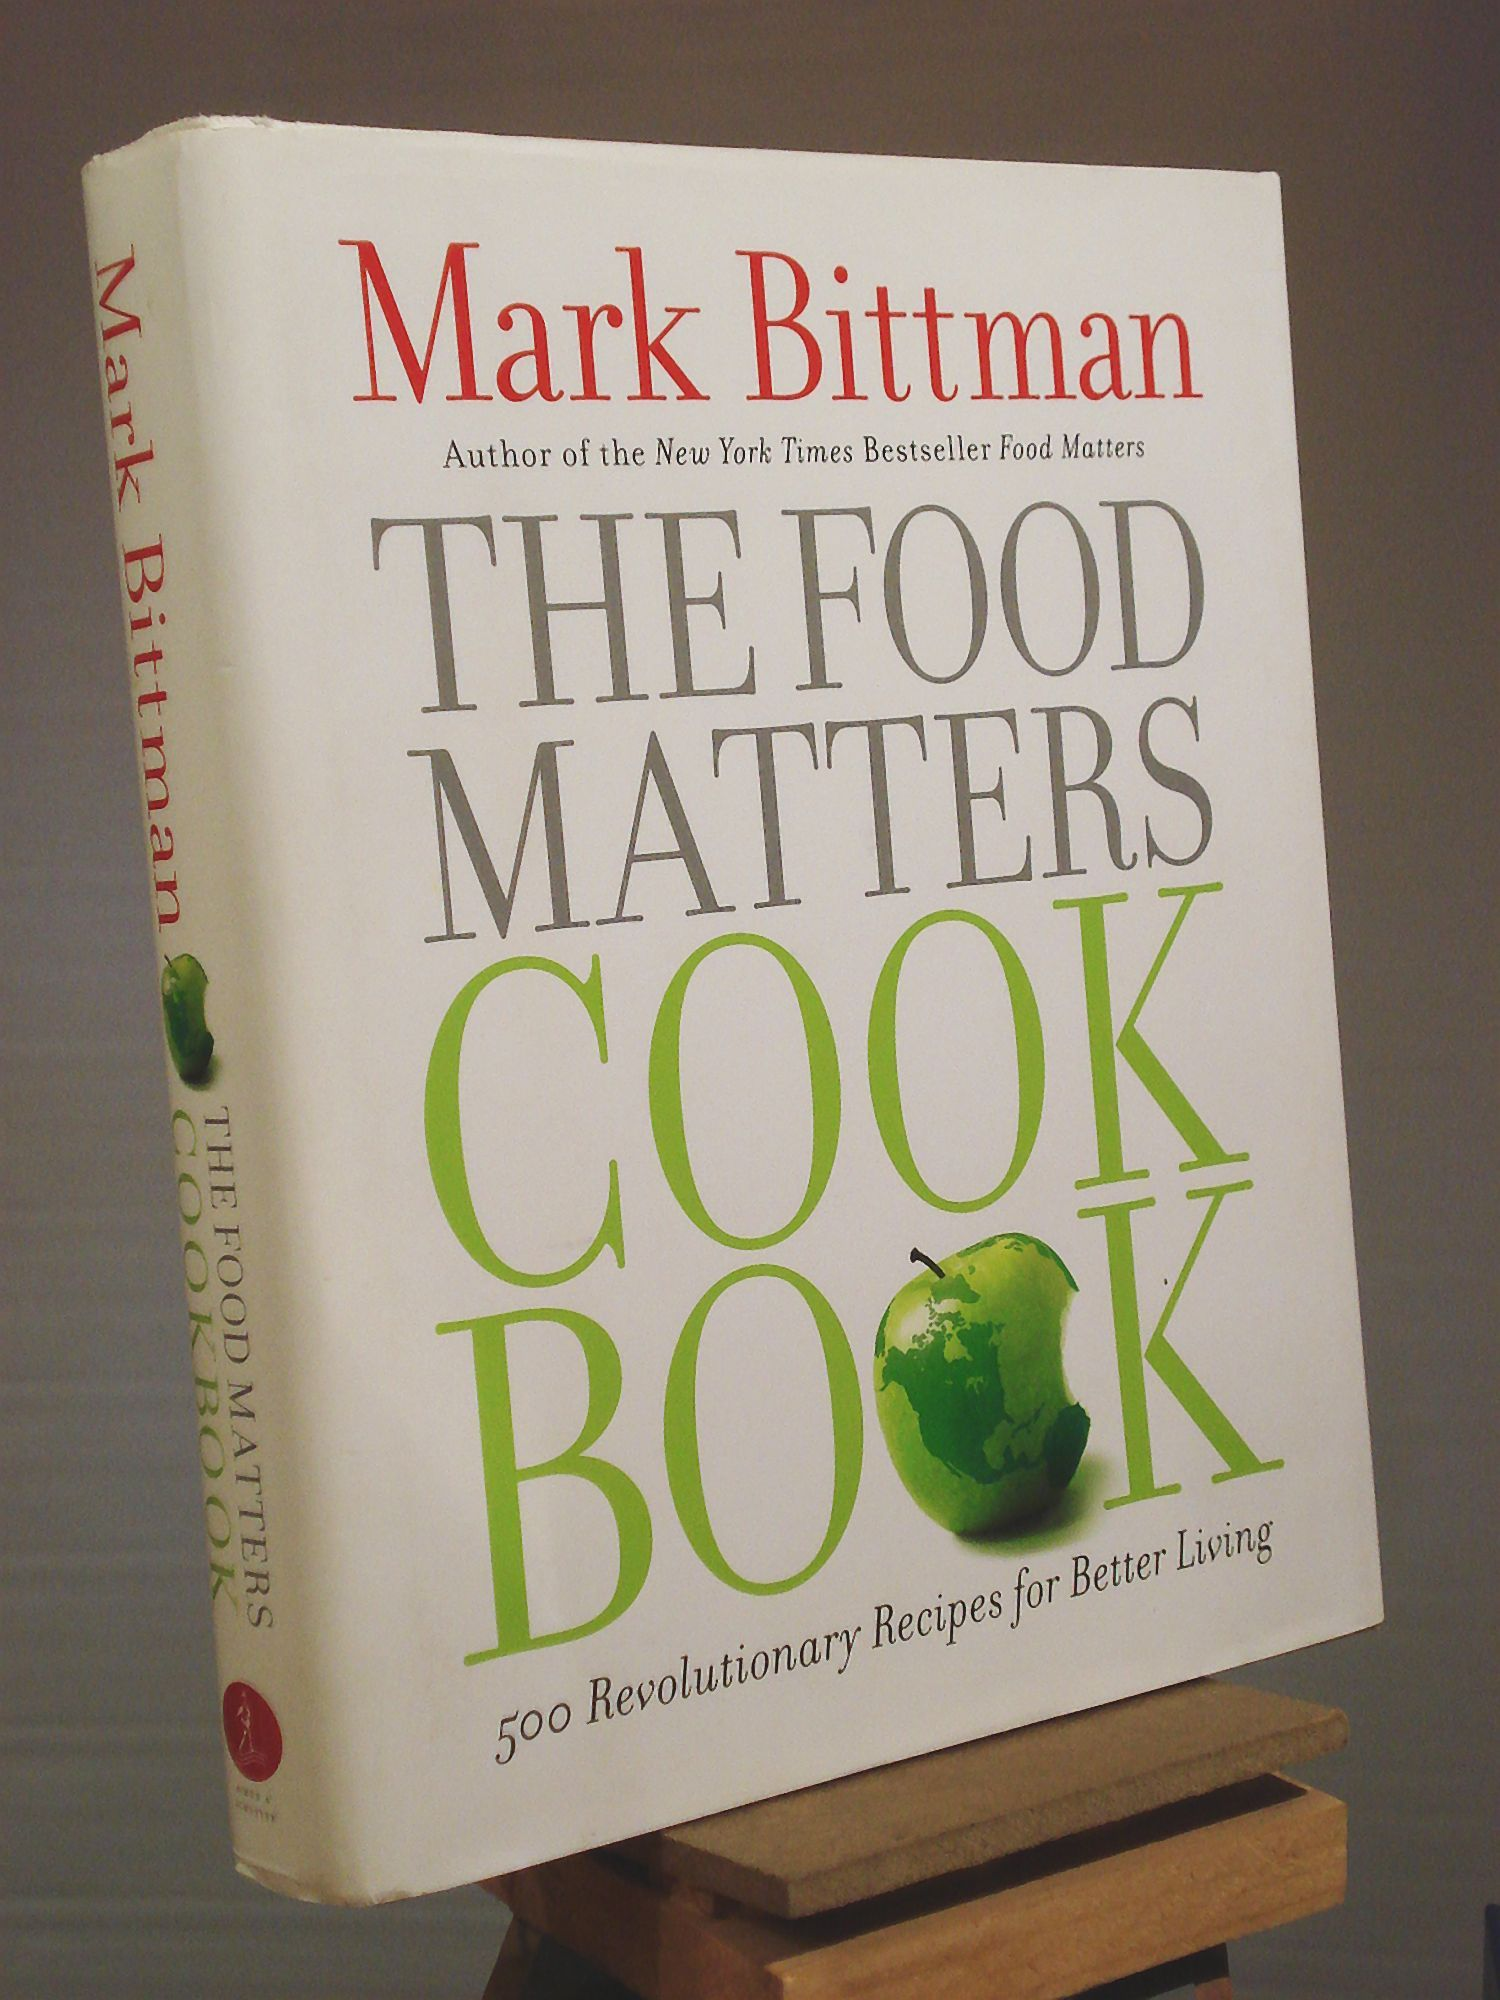 The food matters cookbook 500 revolutionary recipes for better the food matters cookbook 500 revolutionary recipes for better living by mark bittman 1st edition 1st printing 2010 from henniker book farm and forumfinder